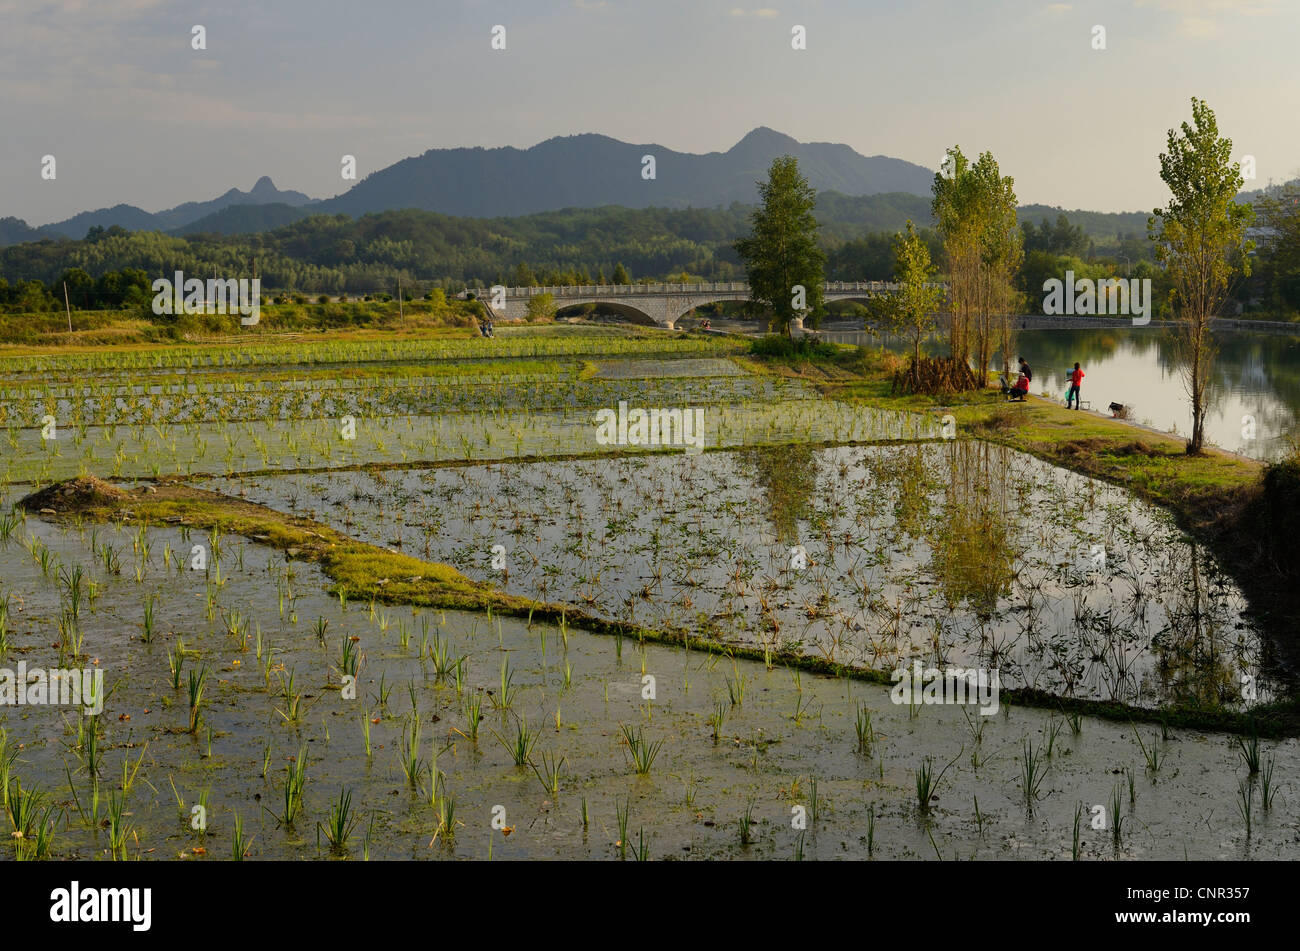 Flooded rice paddies and painters along the Jiyin stream at Hongcun in Anhui Province China - Stock Image